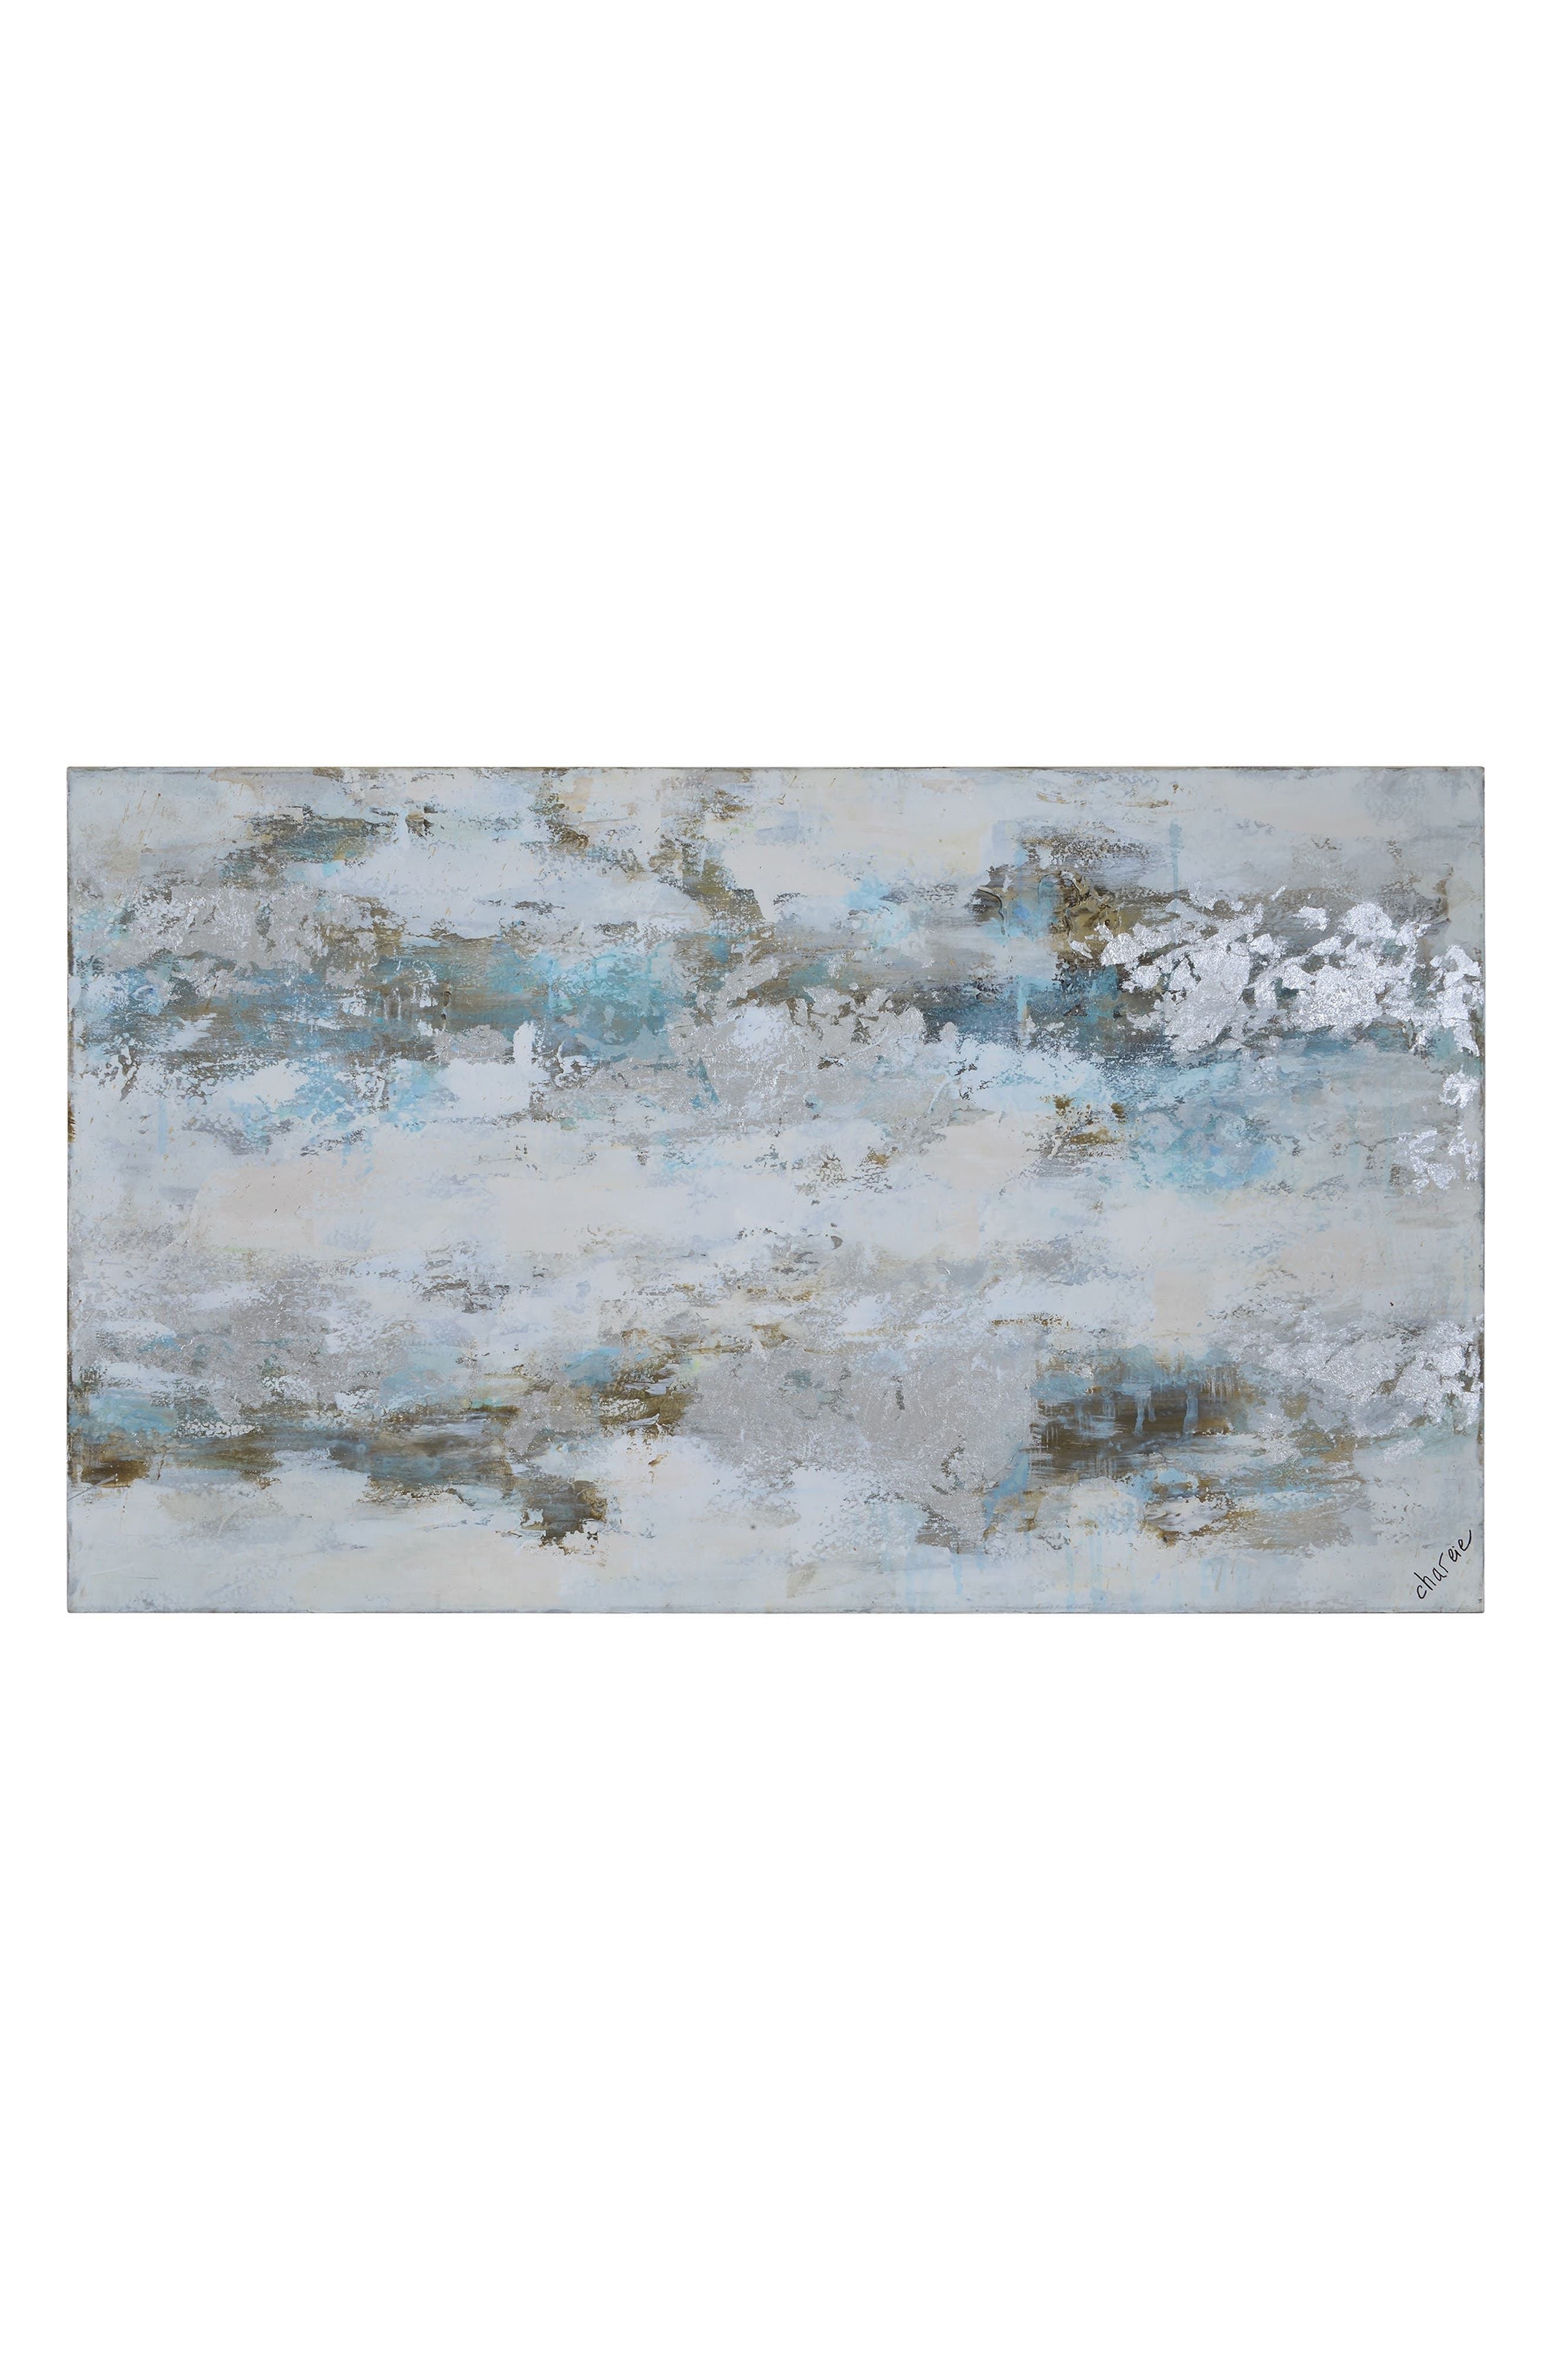 Alternate Image 1 Selected - Renwil Winter's Grace Canvas Wall Art